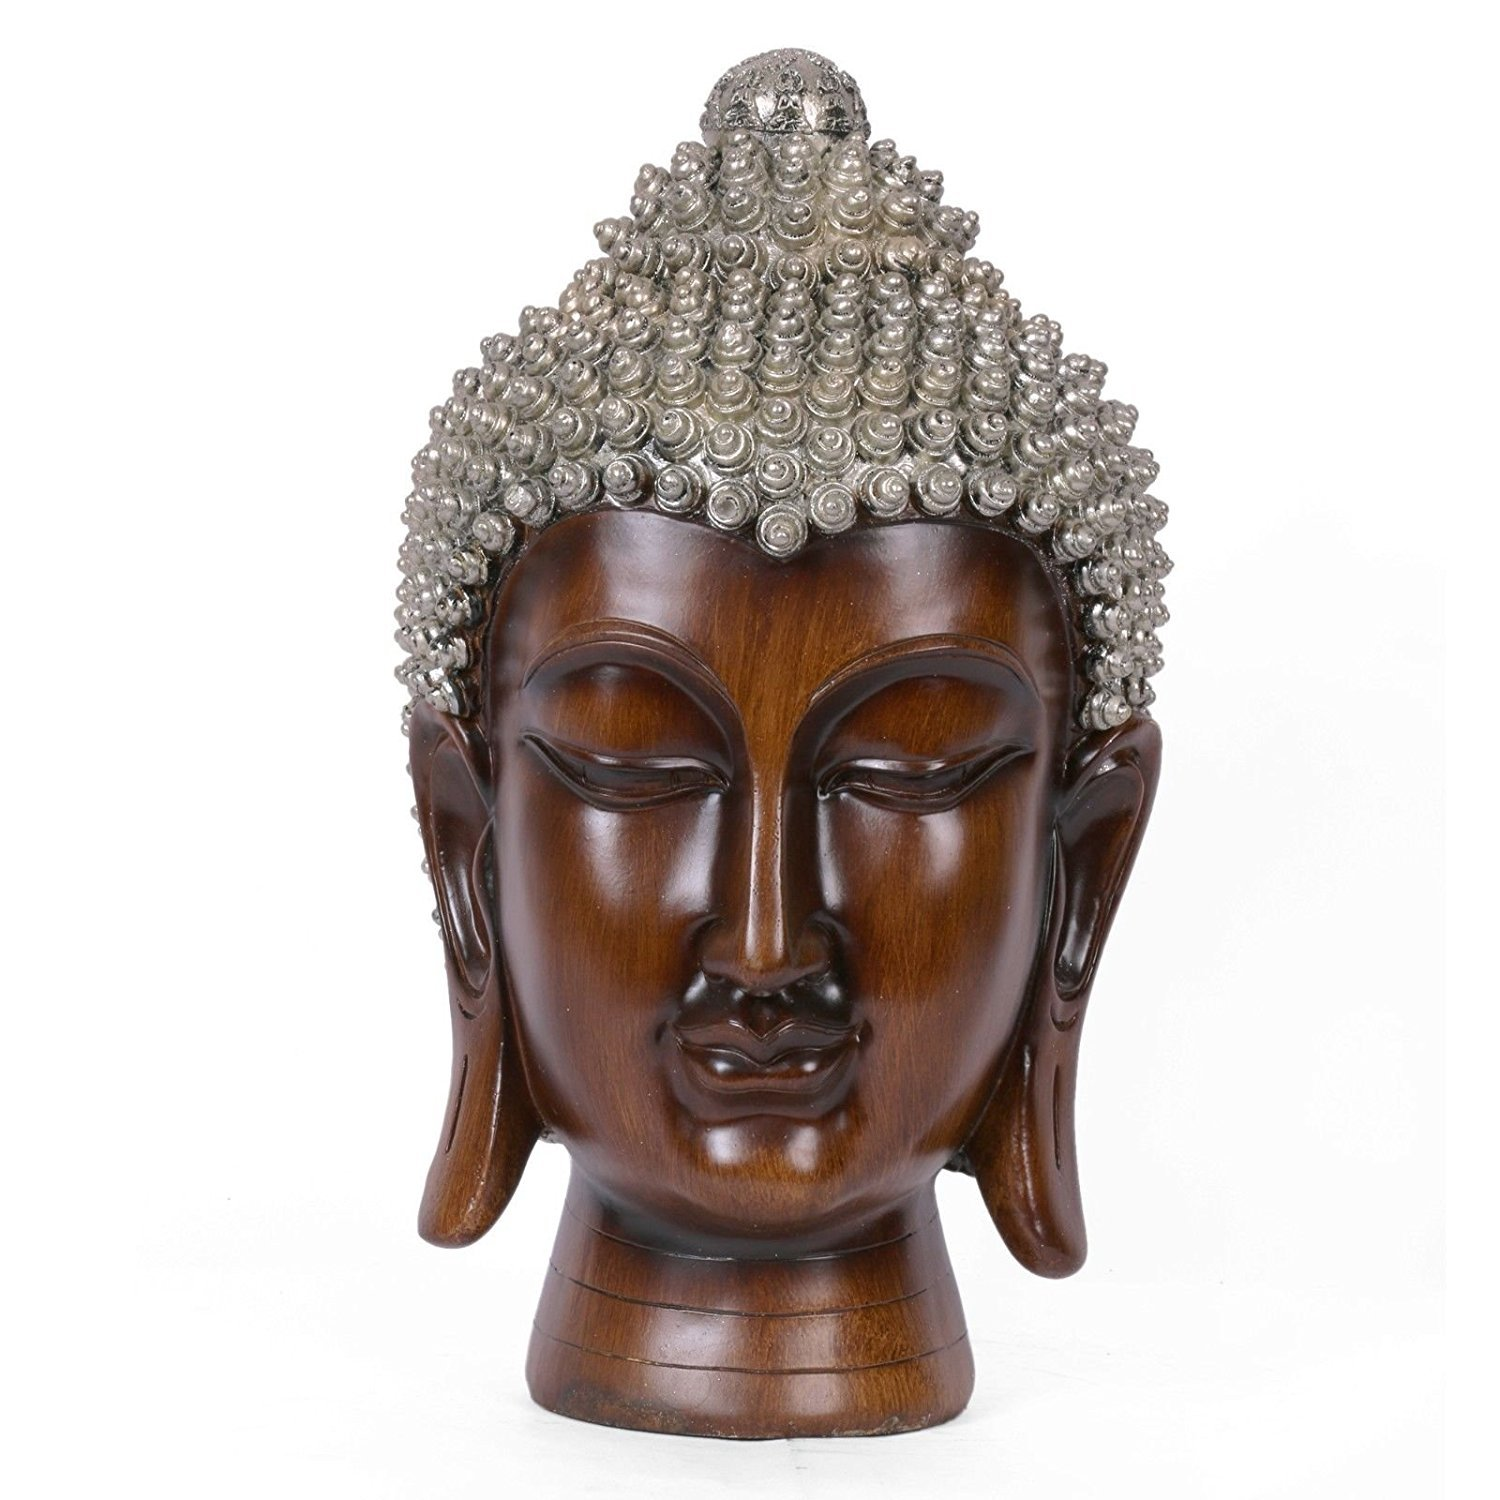 AapnoCraft 16'' Buddha Head Statue Handcrafted Thai Lord Buddha Face Idols Buddhist Brown polished Sculpture Vastu Gifts by AapnoCraft